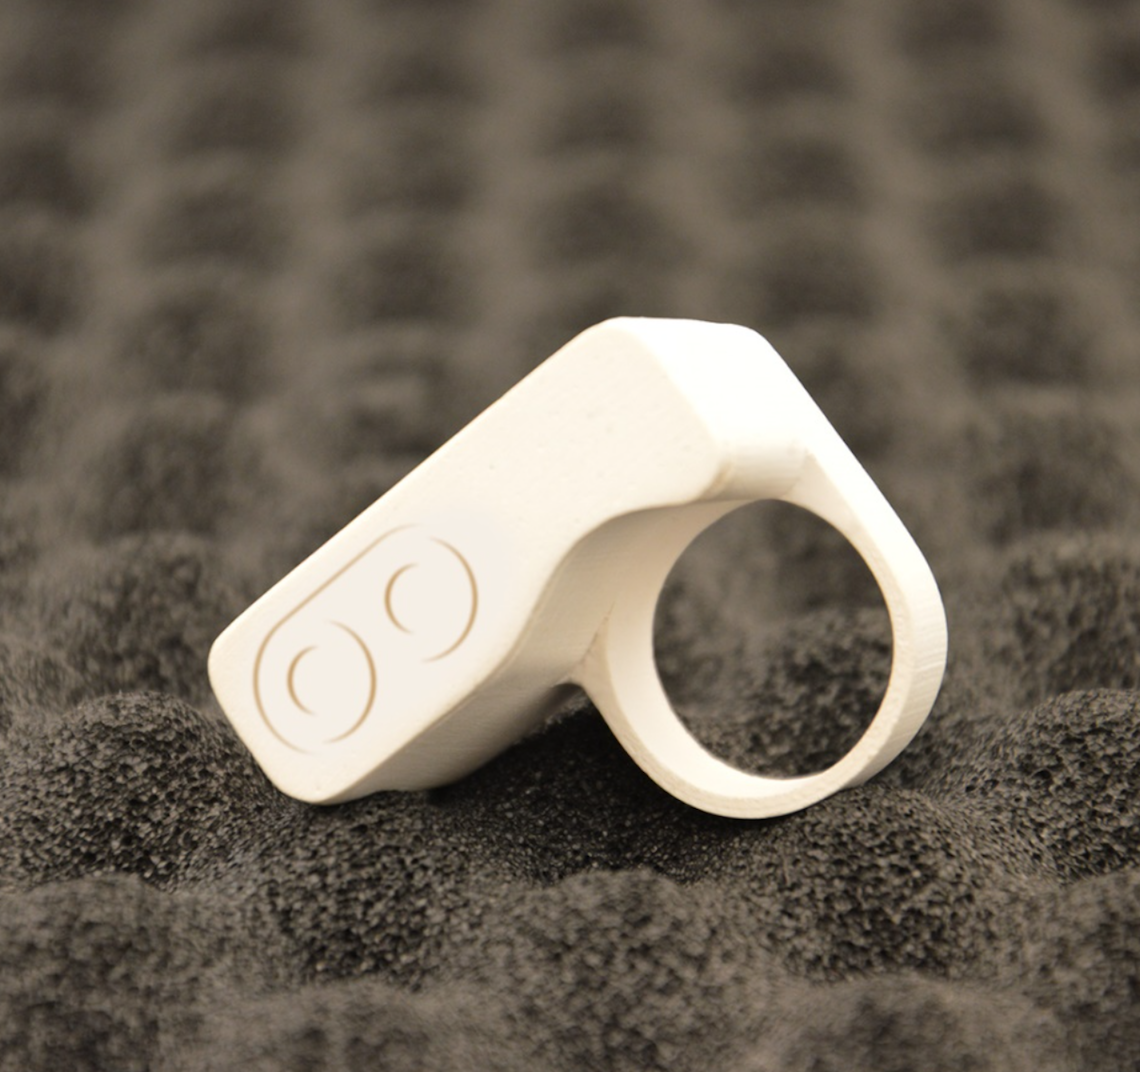 This ring is an essential component to the multi sensory experience © Courtesy of Tooteko